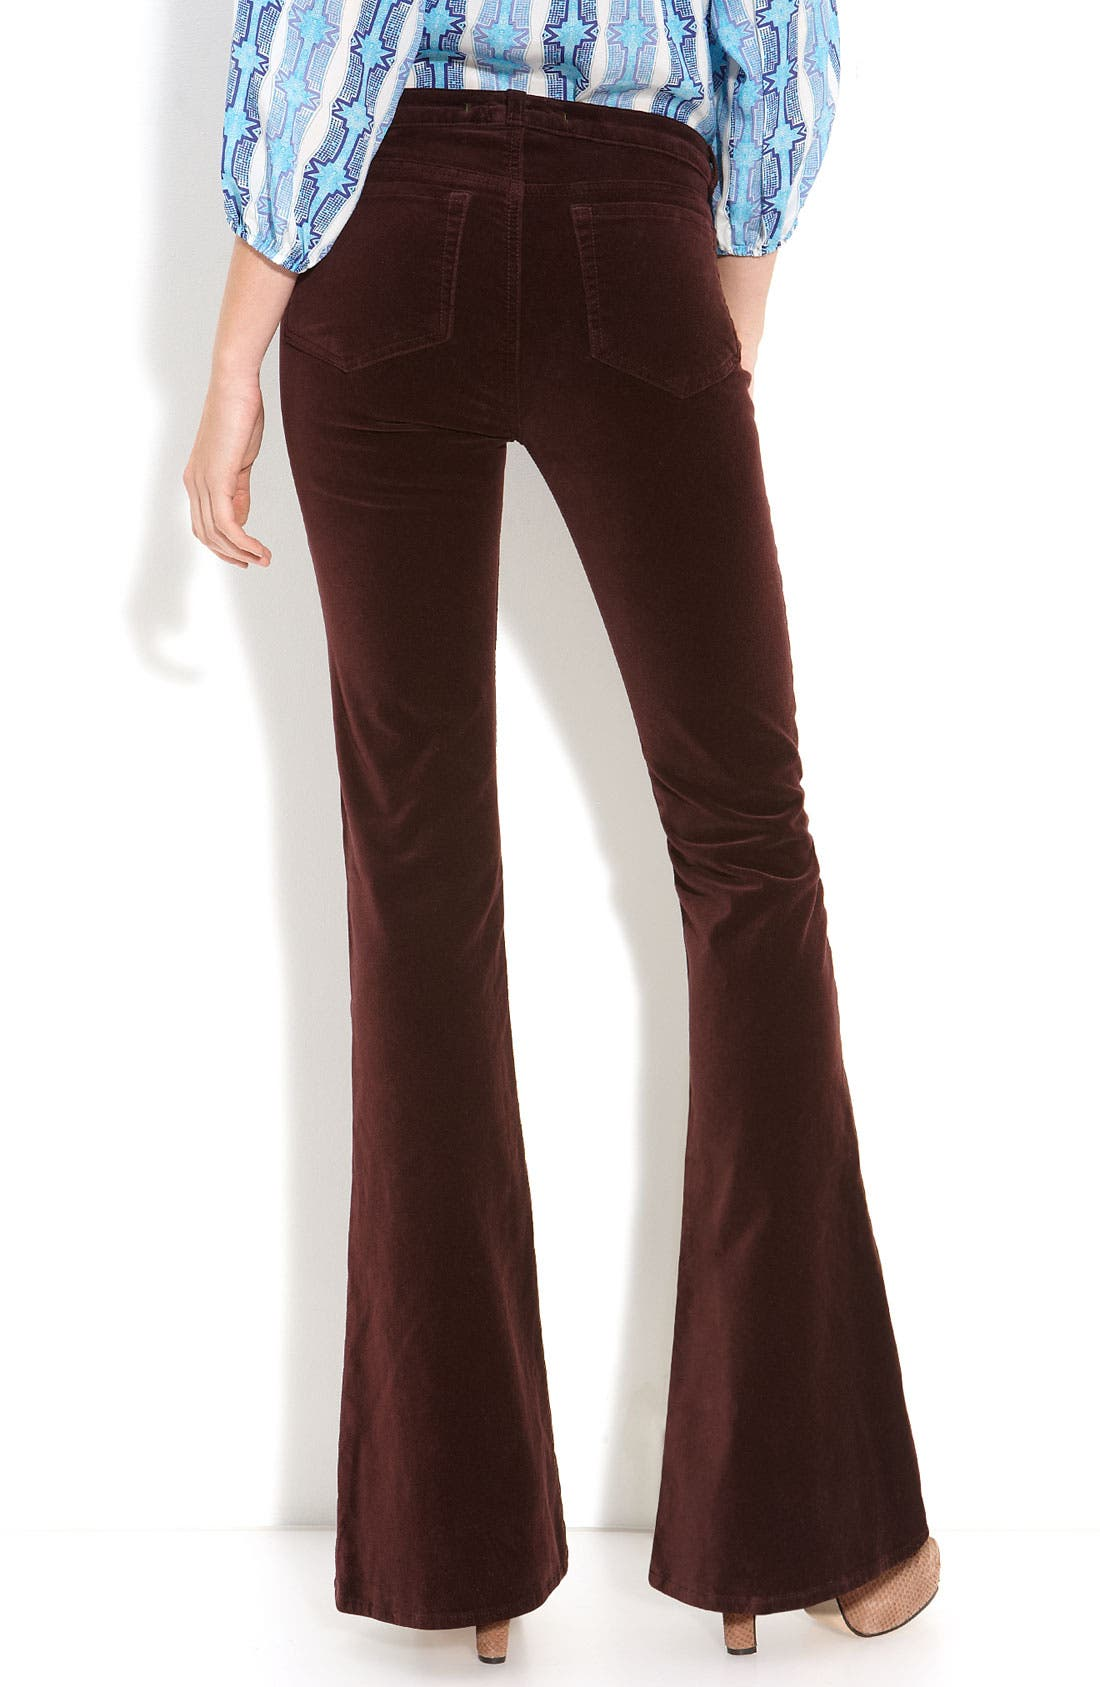 Alternate Image 1 Selected - J Brand 'Velvet Martini' Skinny Flare Leg Jeans